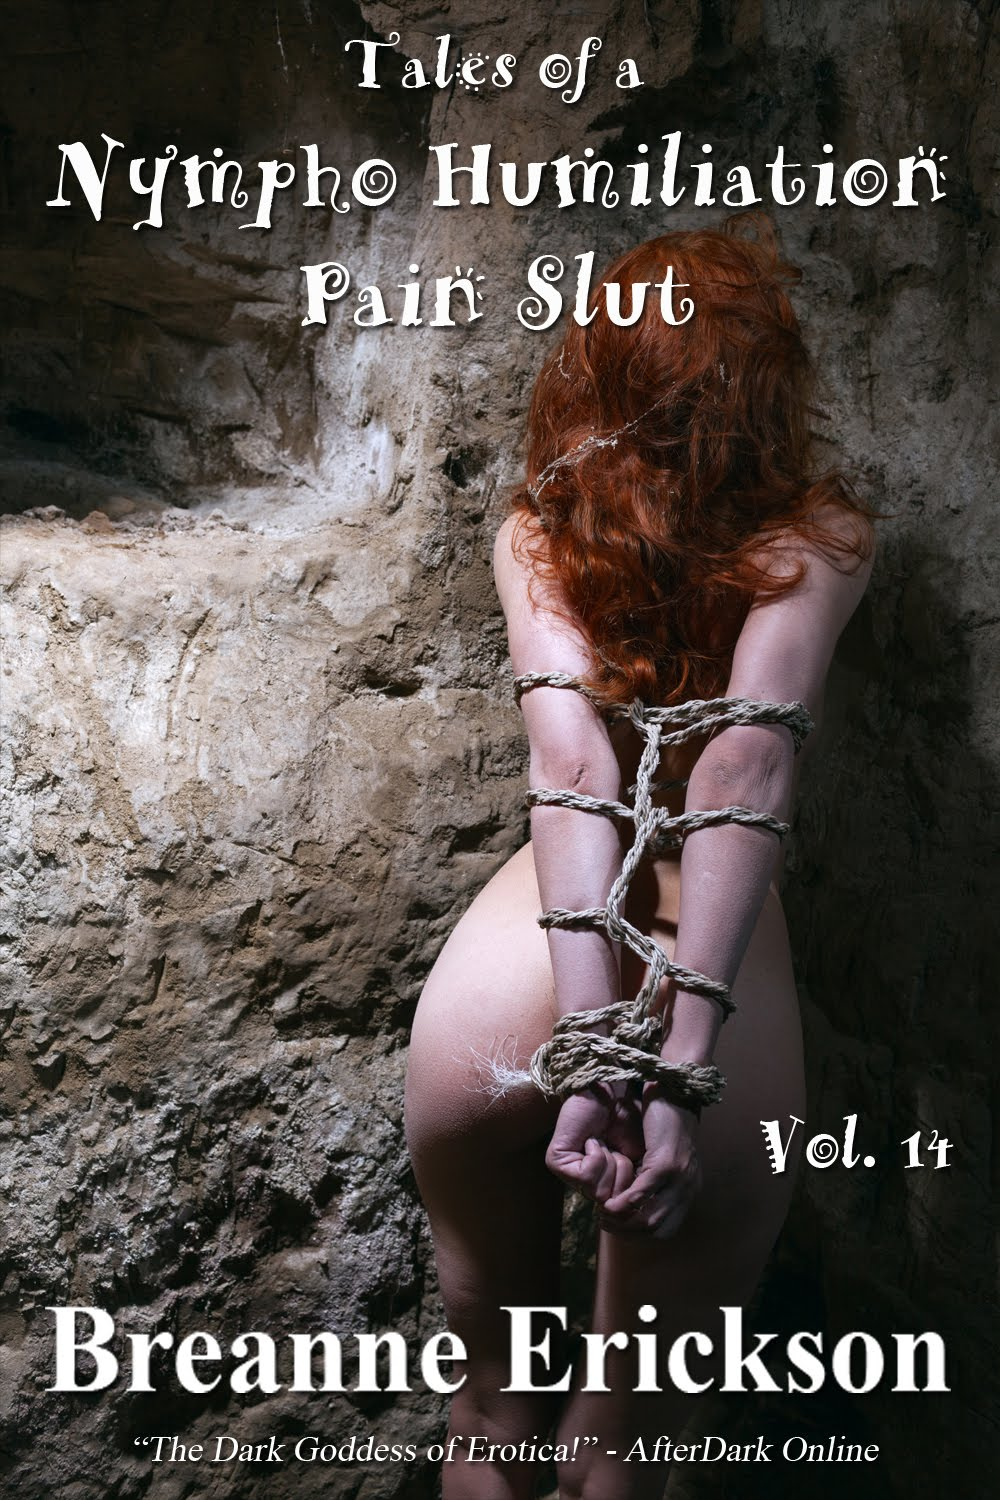 can recommend fetish slave sub gagging sorry, that can help